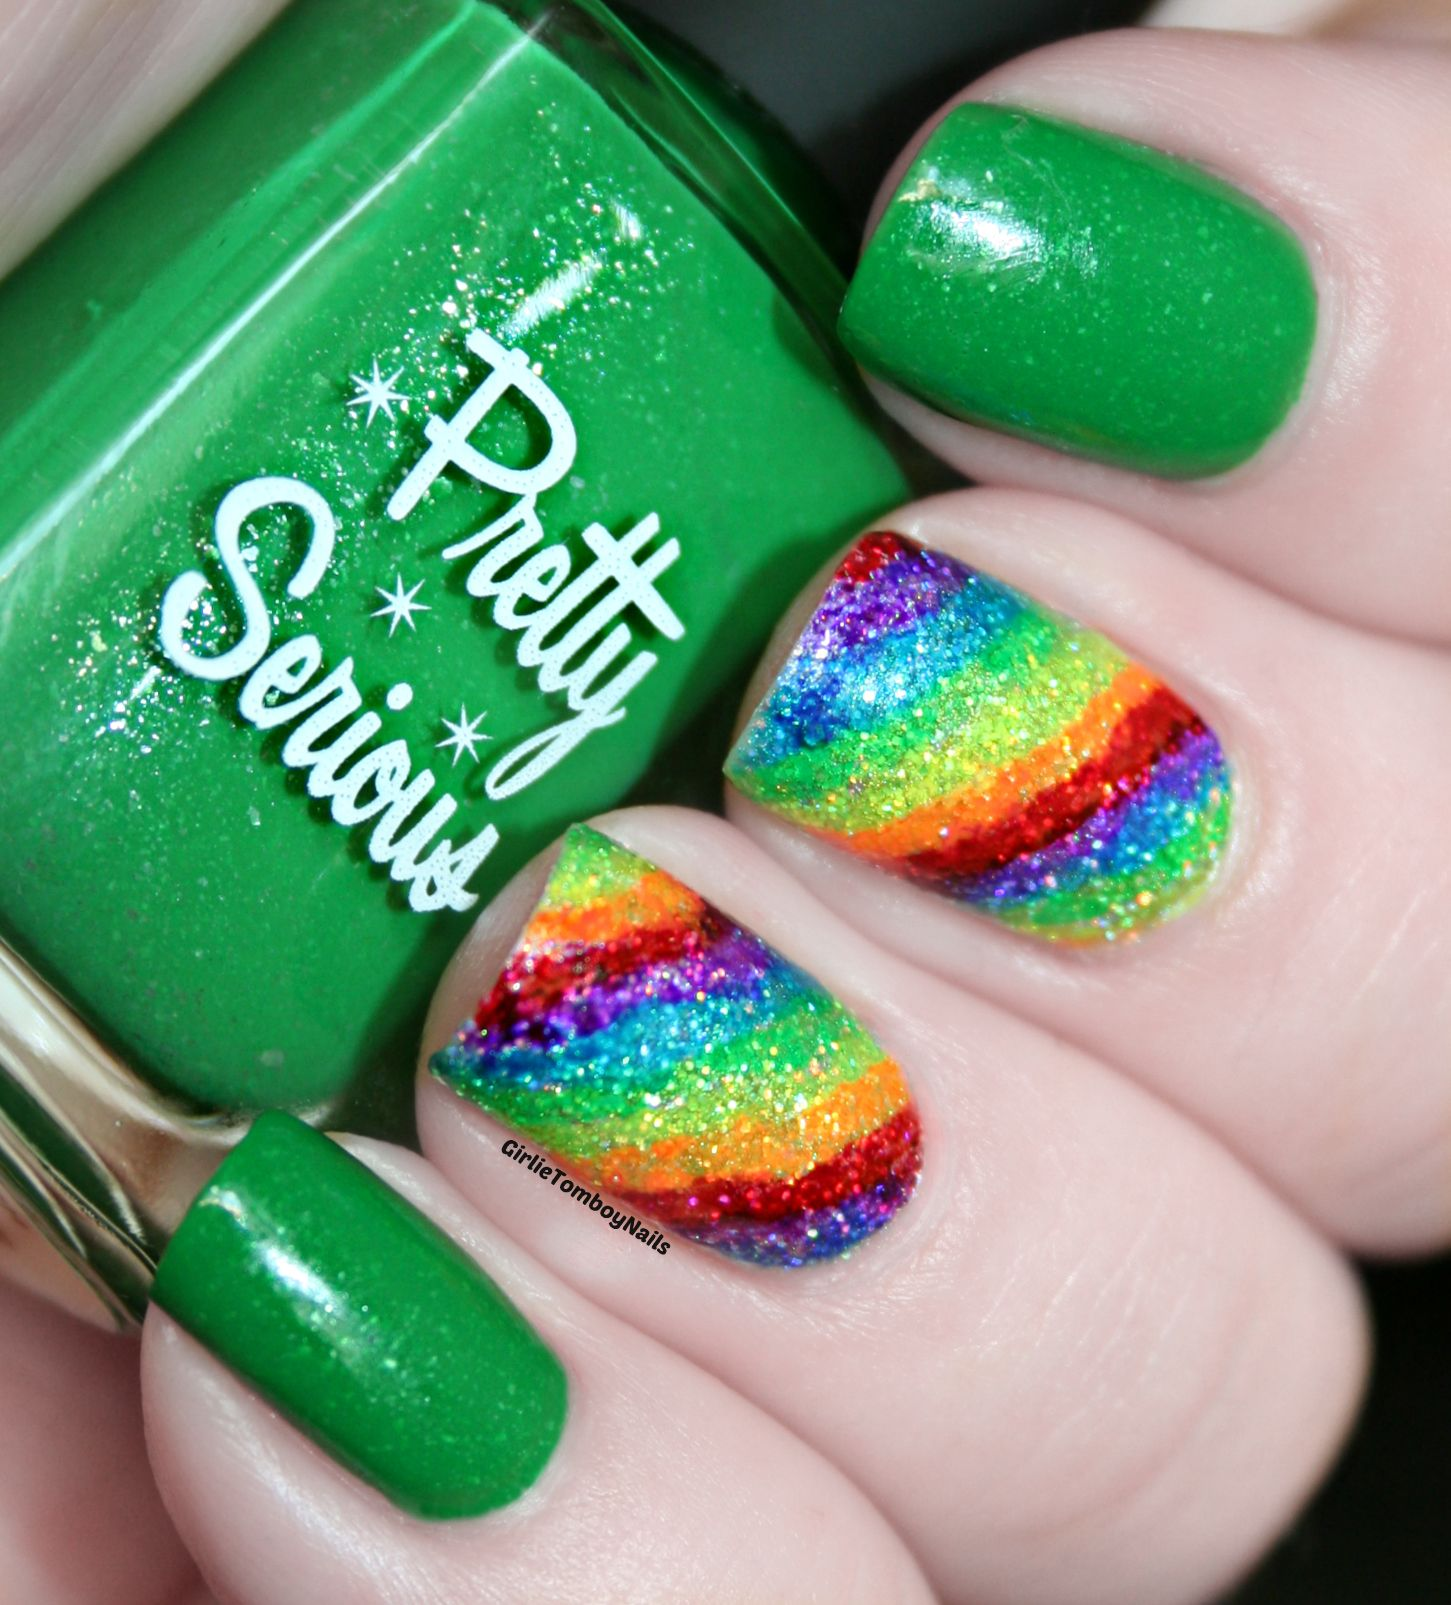 Sharpie Highlighter Rainbows Nail Art | Girlie Tomboy Nails | Girlie ...